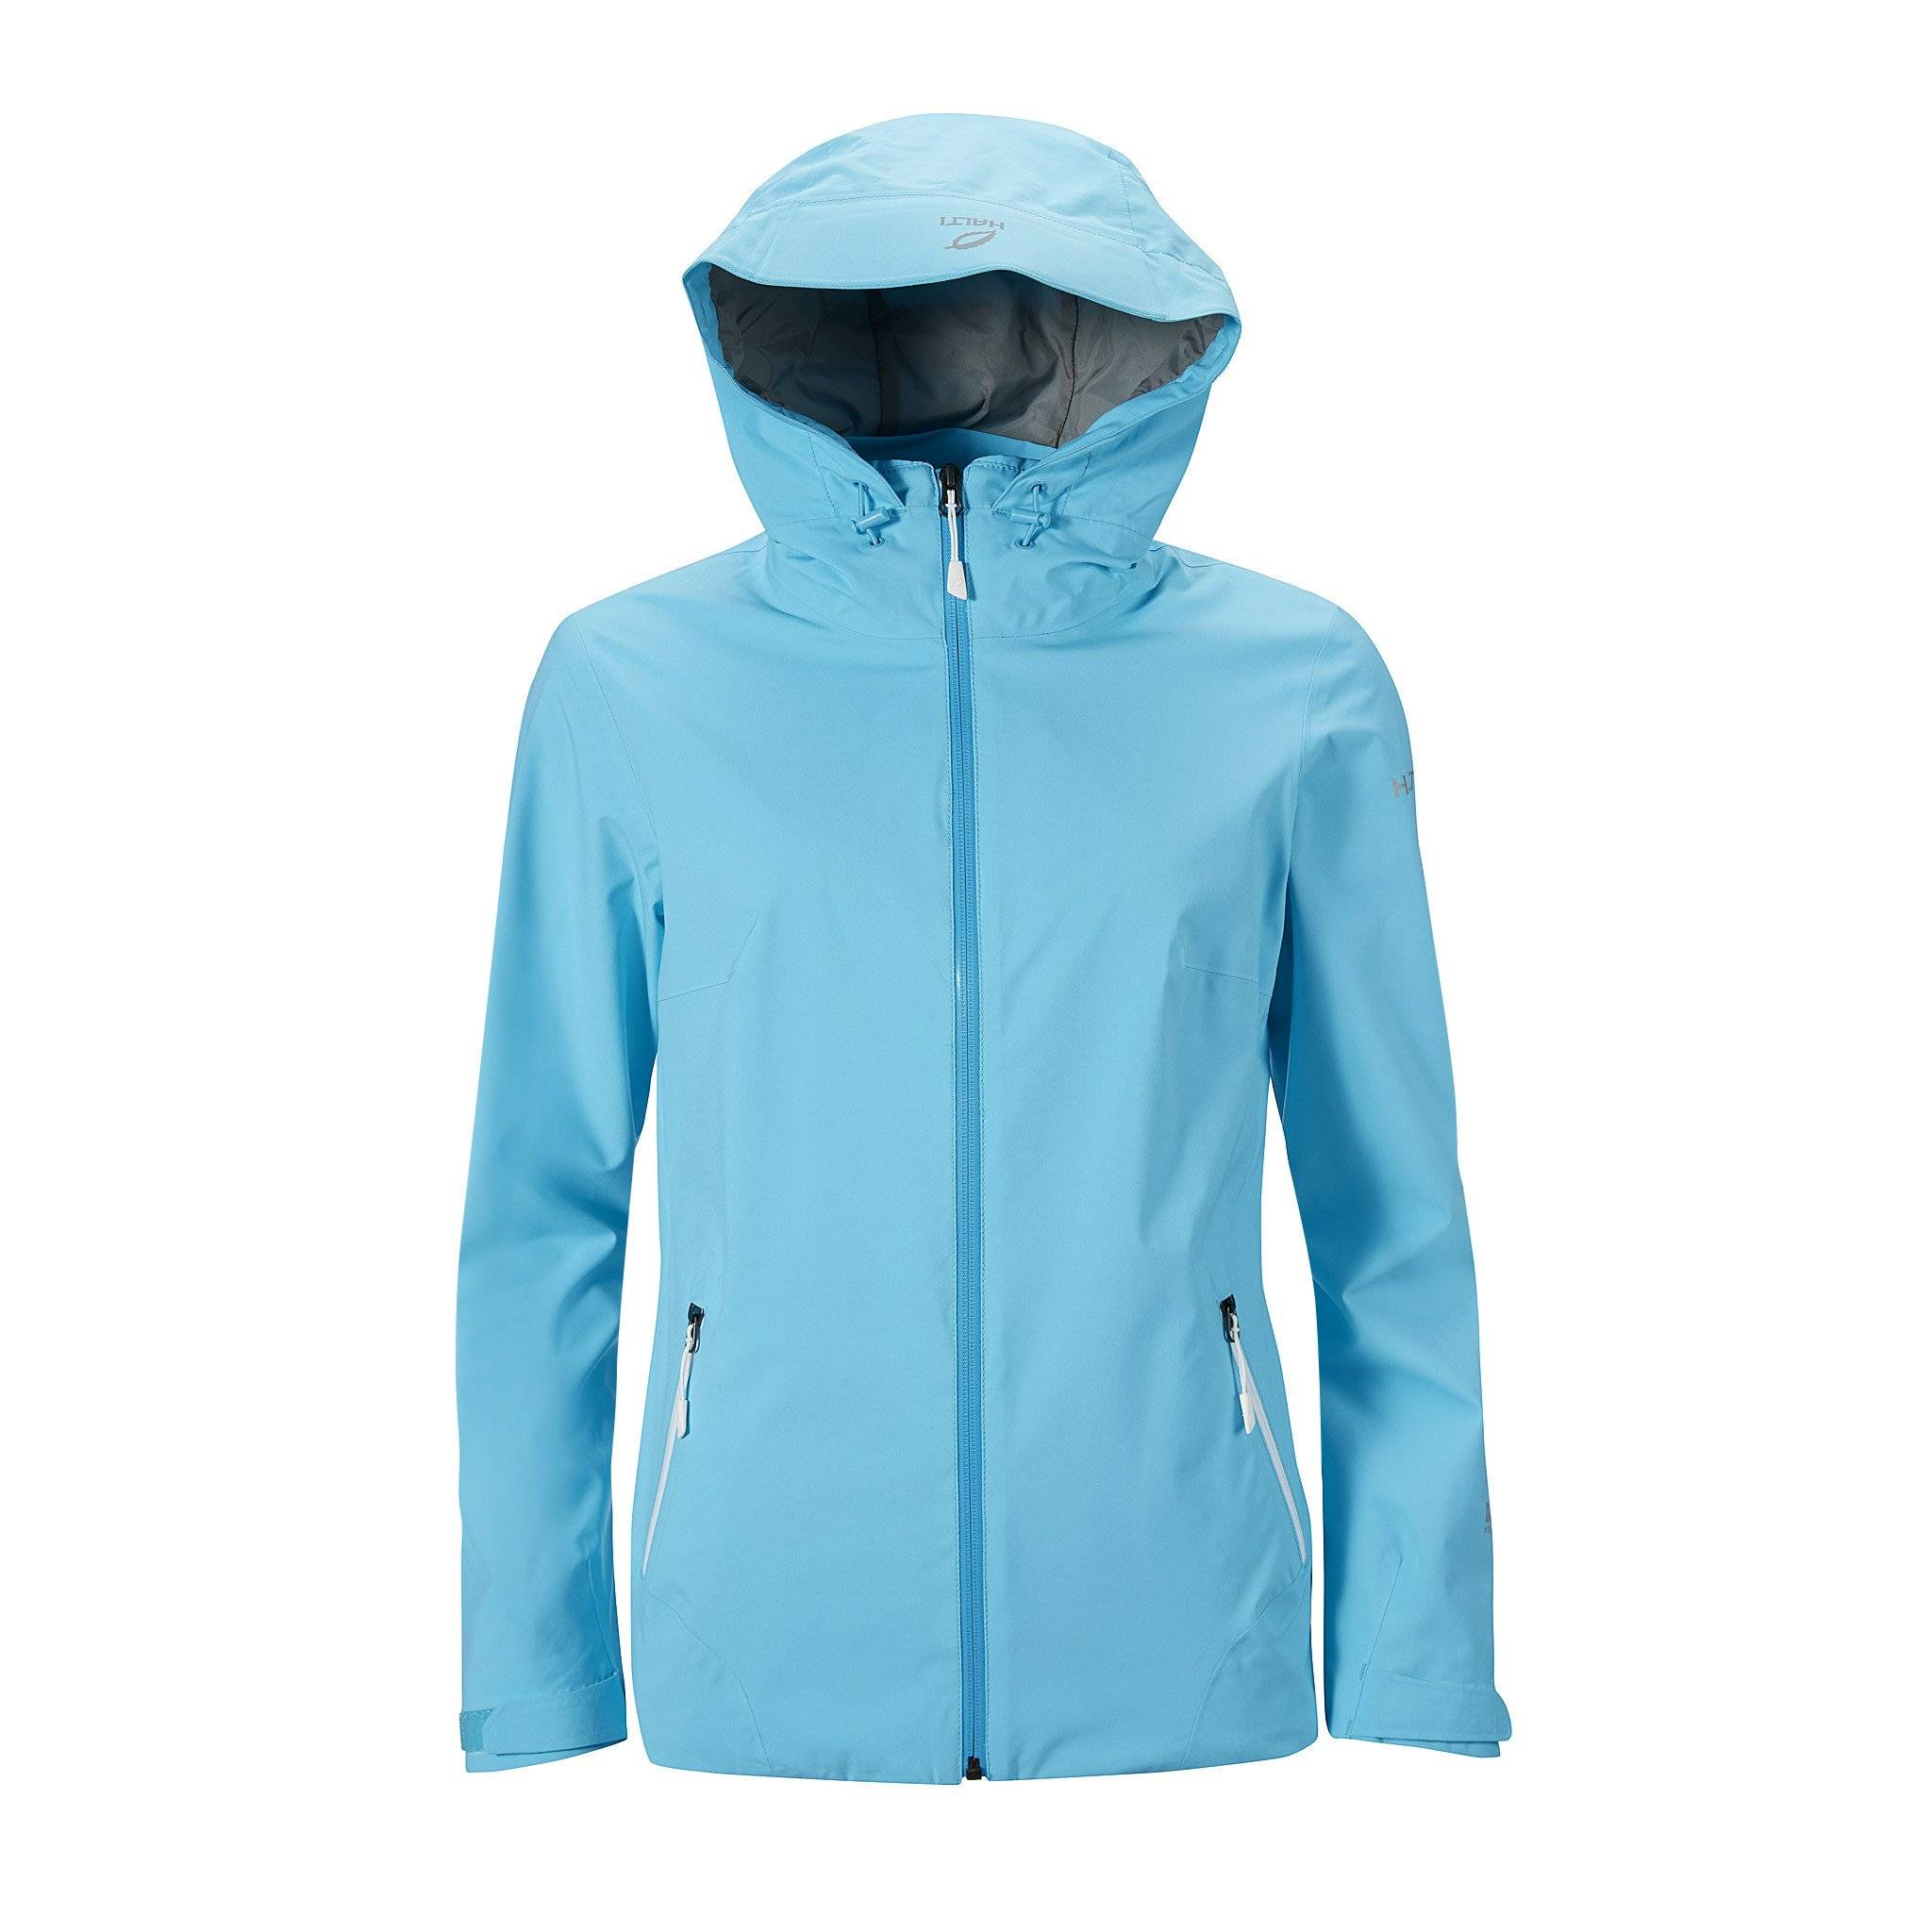 Womens Waterproof and Windproof Jacket